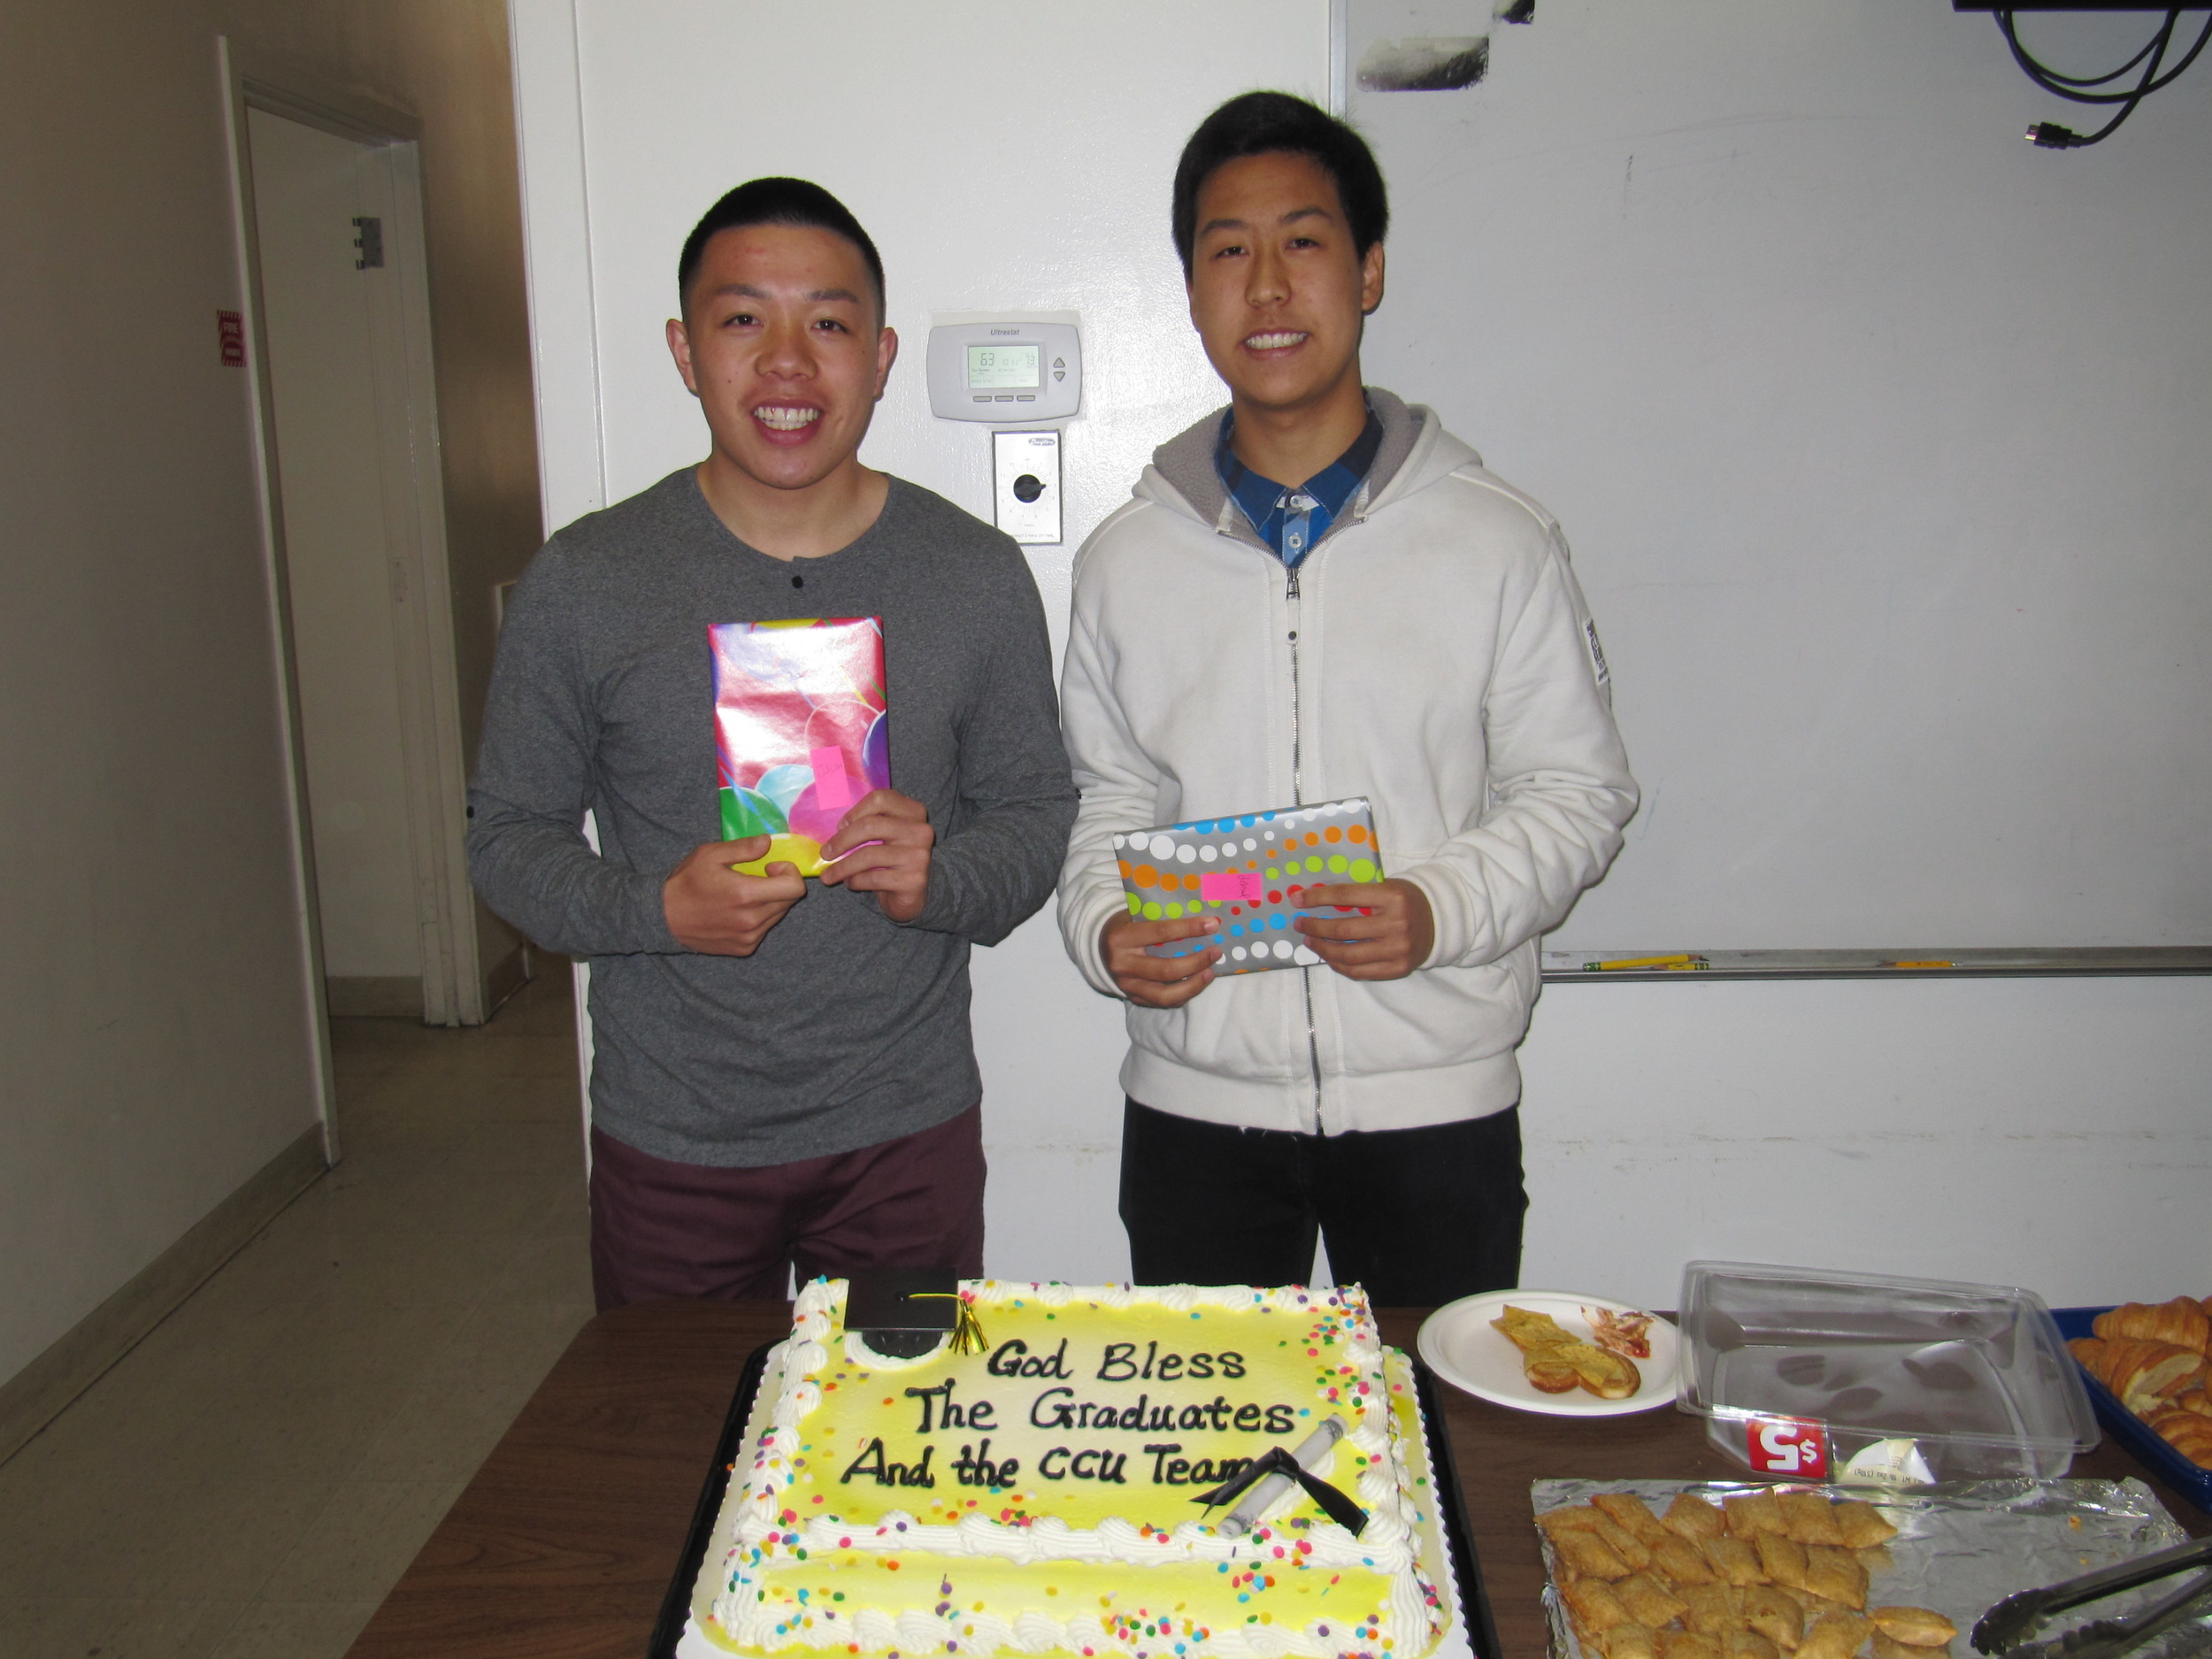 Jason Ching & Lemuel Chan (not pictured: Sam Mak, Caresse Chan, Chris Chan, Stephen Chan)